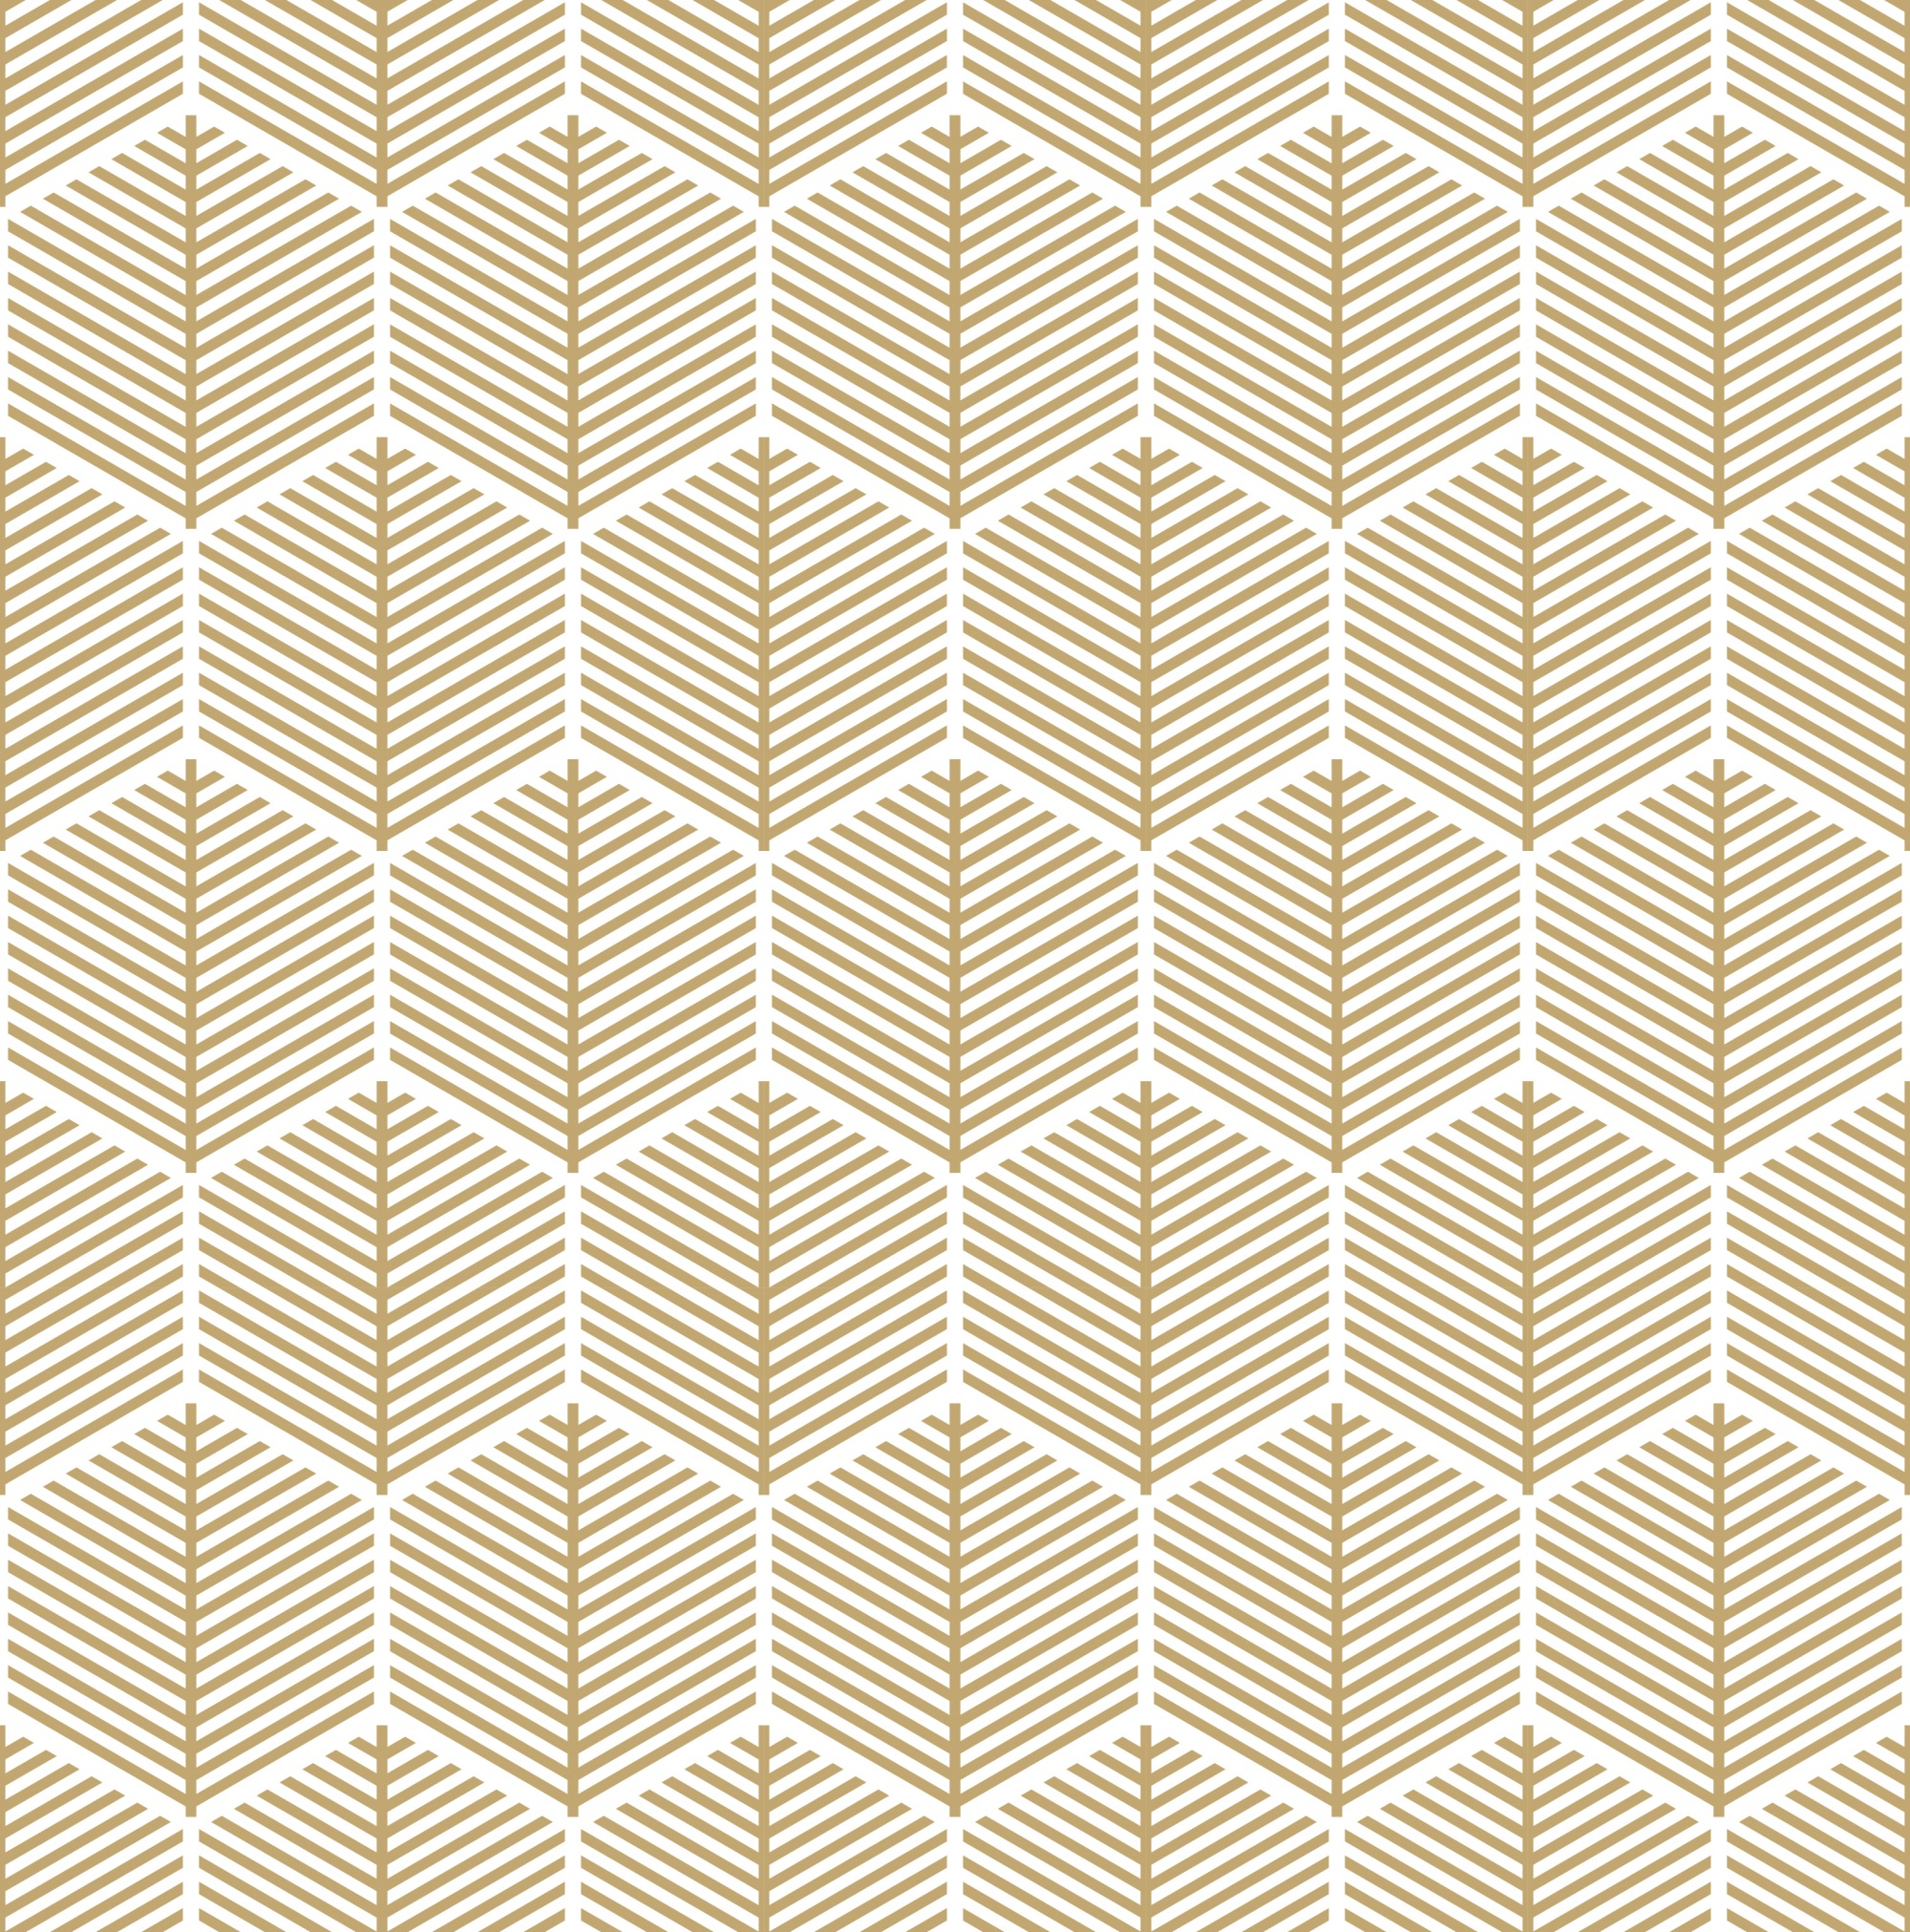 Abstract background with hexagonal pattern